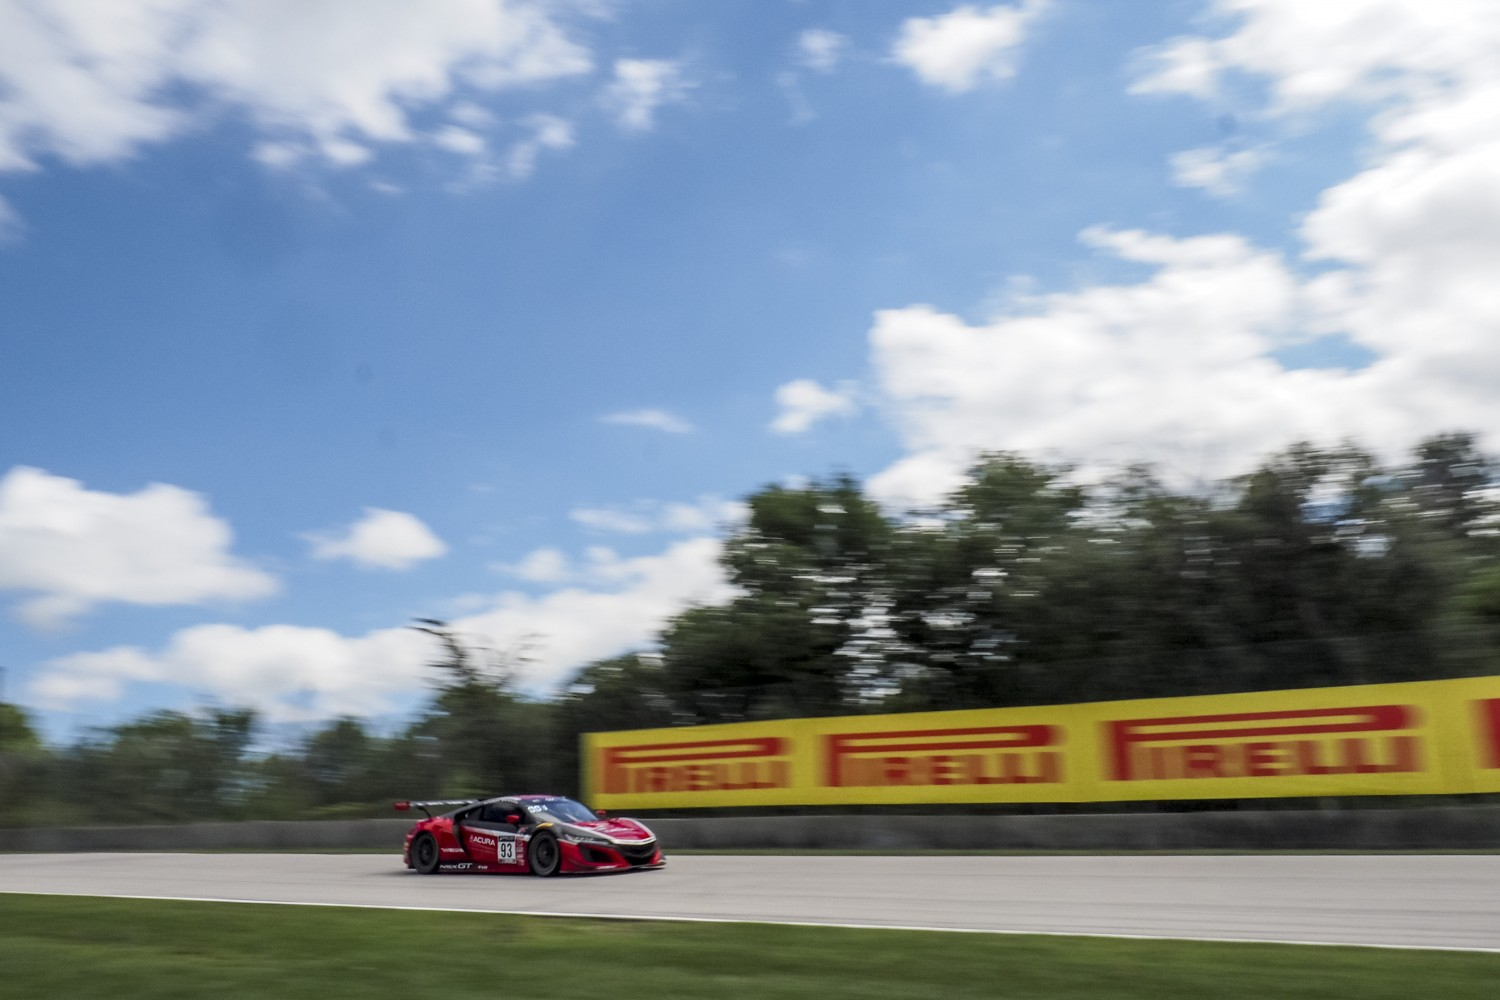 #93 Acura NSX GT3 of Shelby Blackstock and Trent Hindman, Racers Edge Motorsports, GT3 Pro-Am, SRO America, Road America, Elkhart Lake, WI, July 2020.